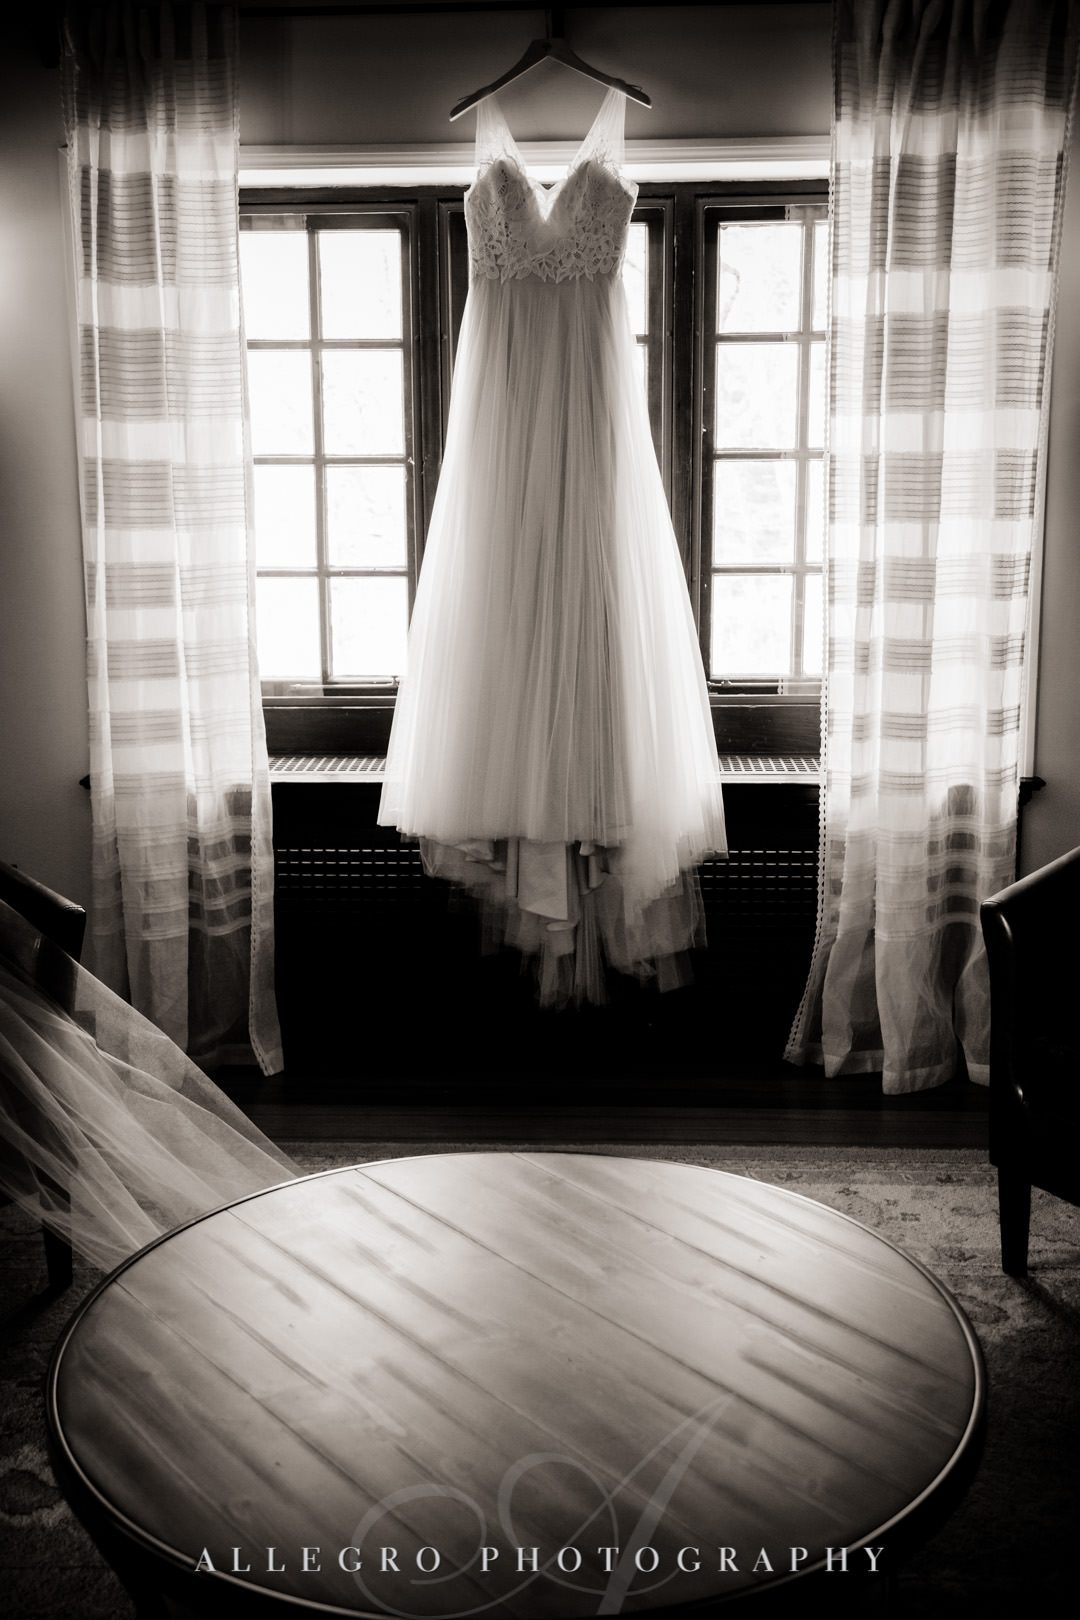 Black and white photo of wedding dress hanging in sunlit room.